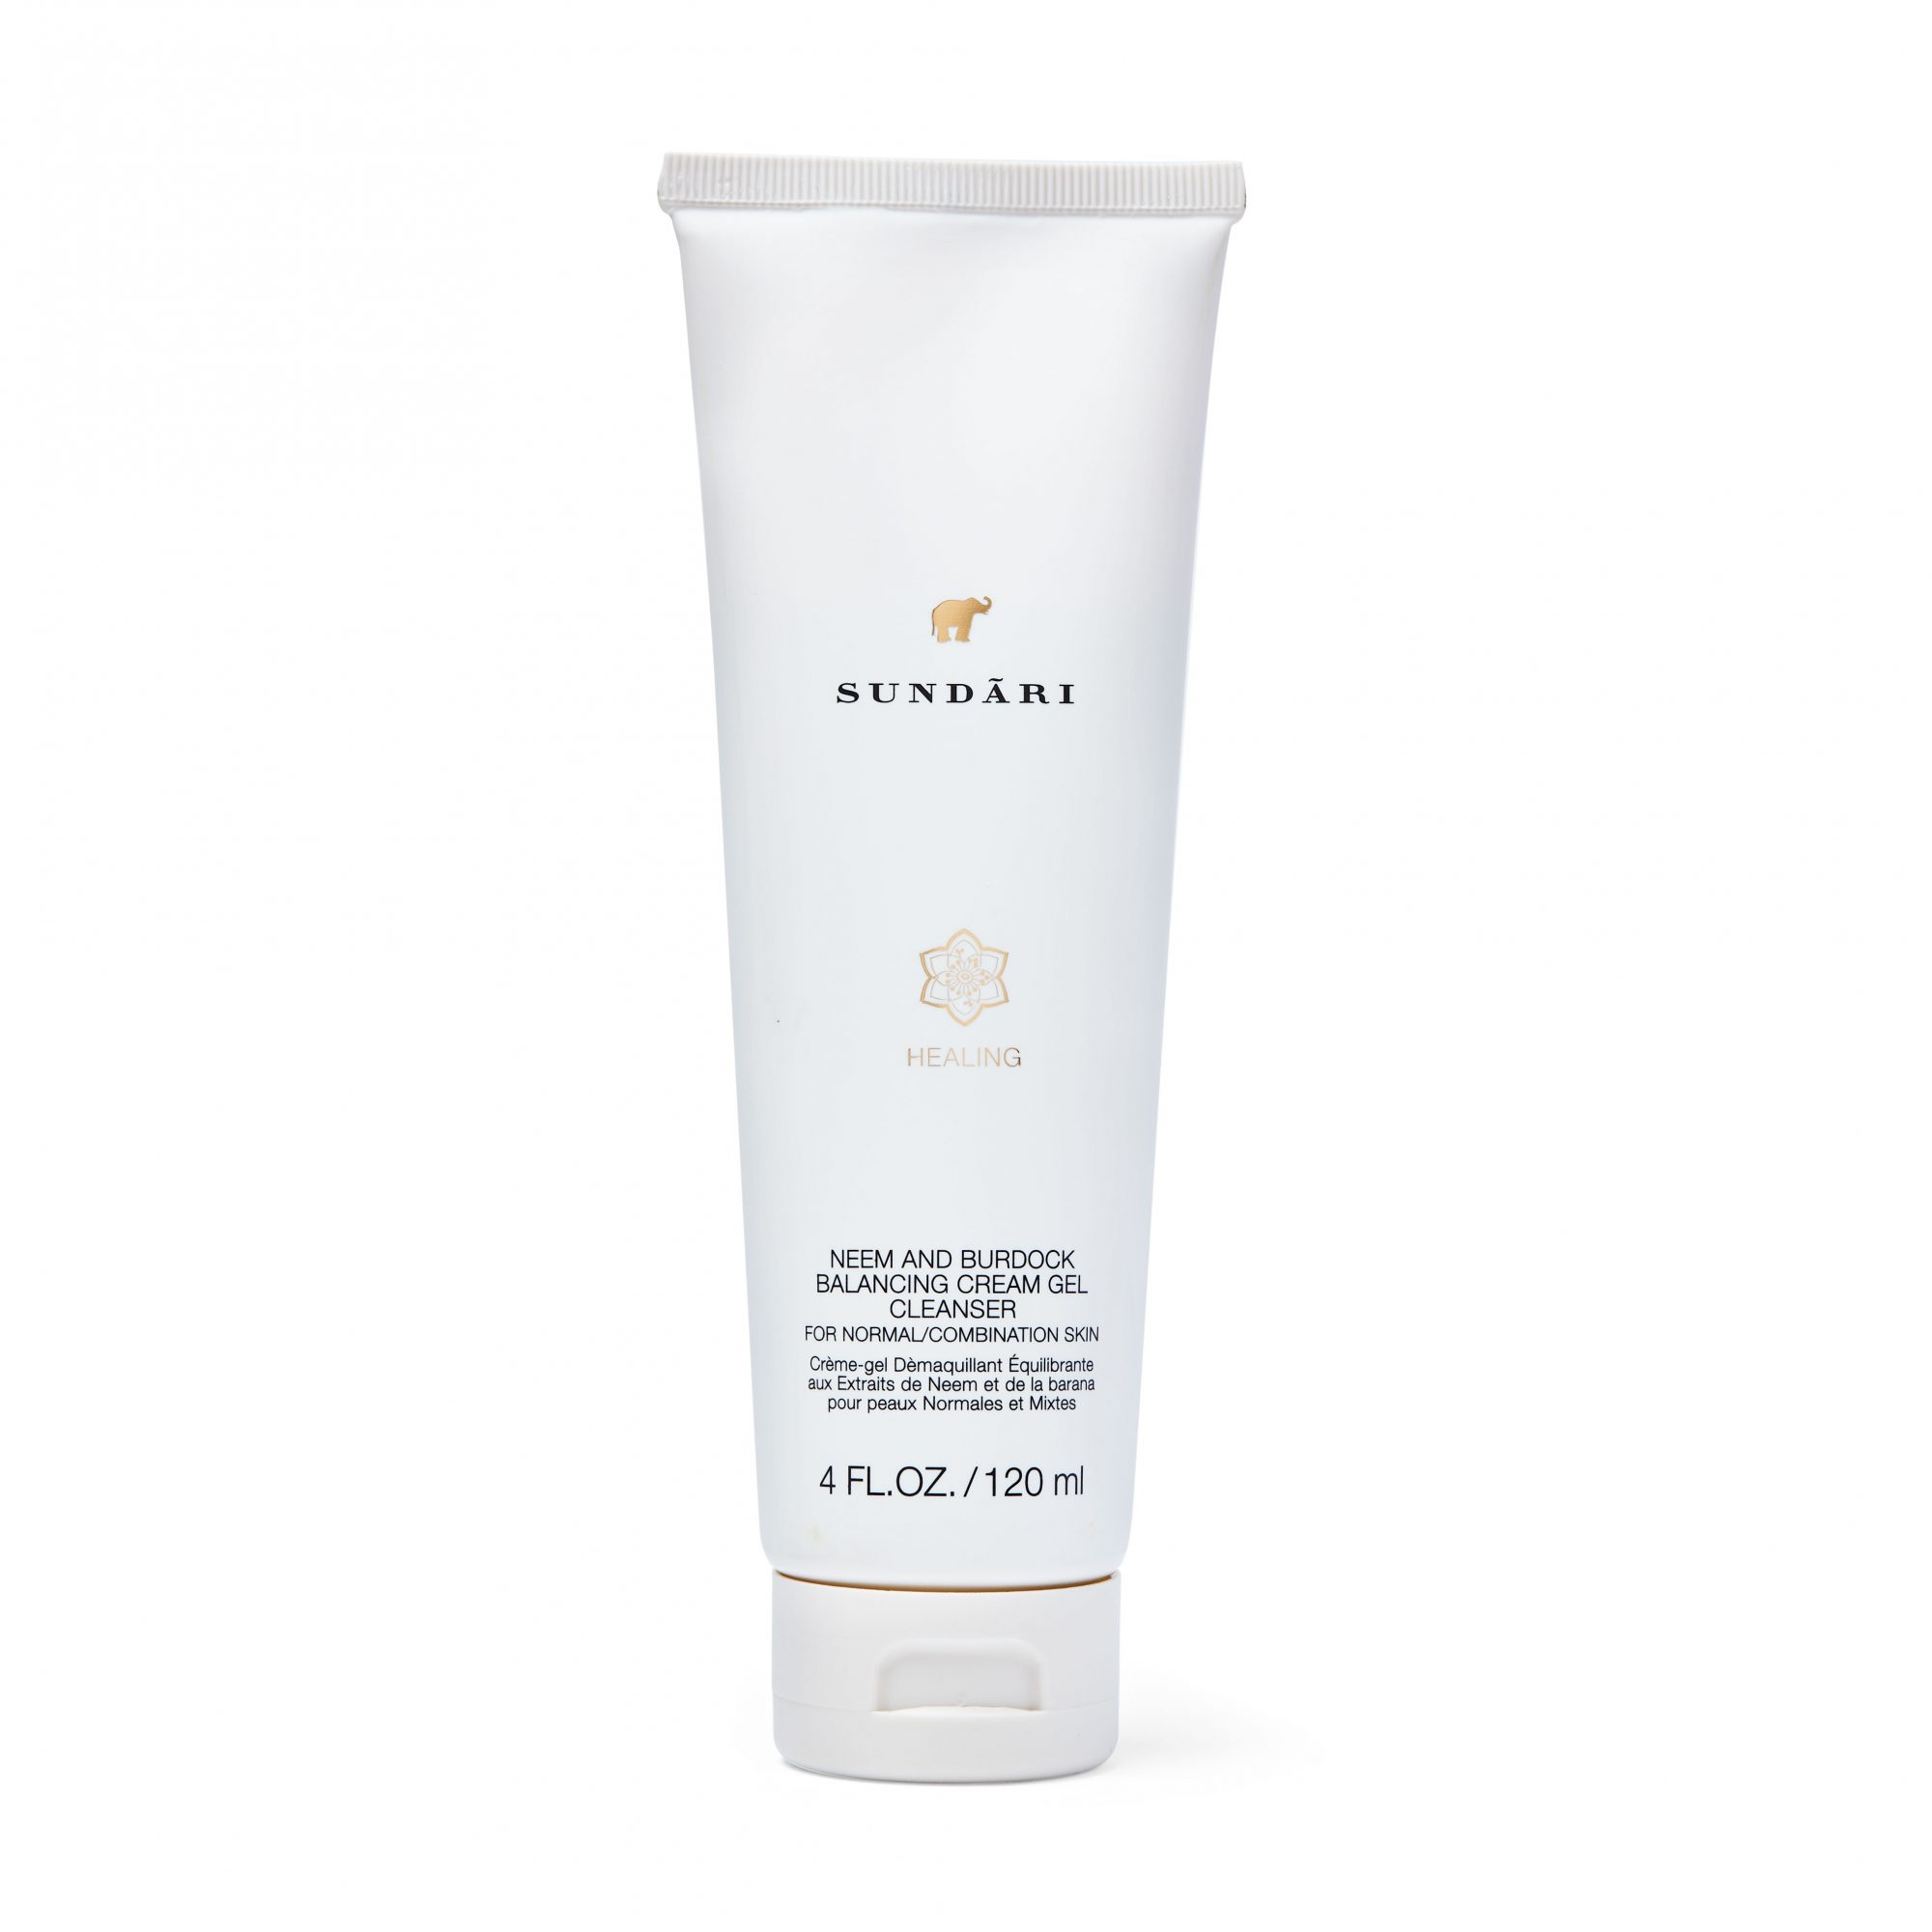 Sundāri Neem and Burdock Balancing Cream-Gel Cleanser